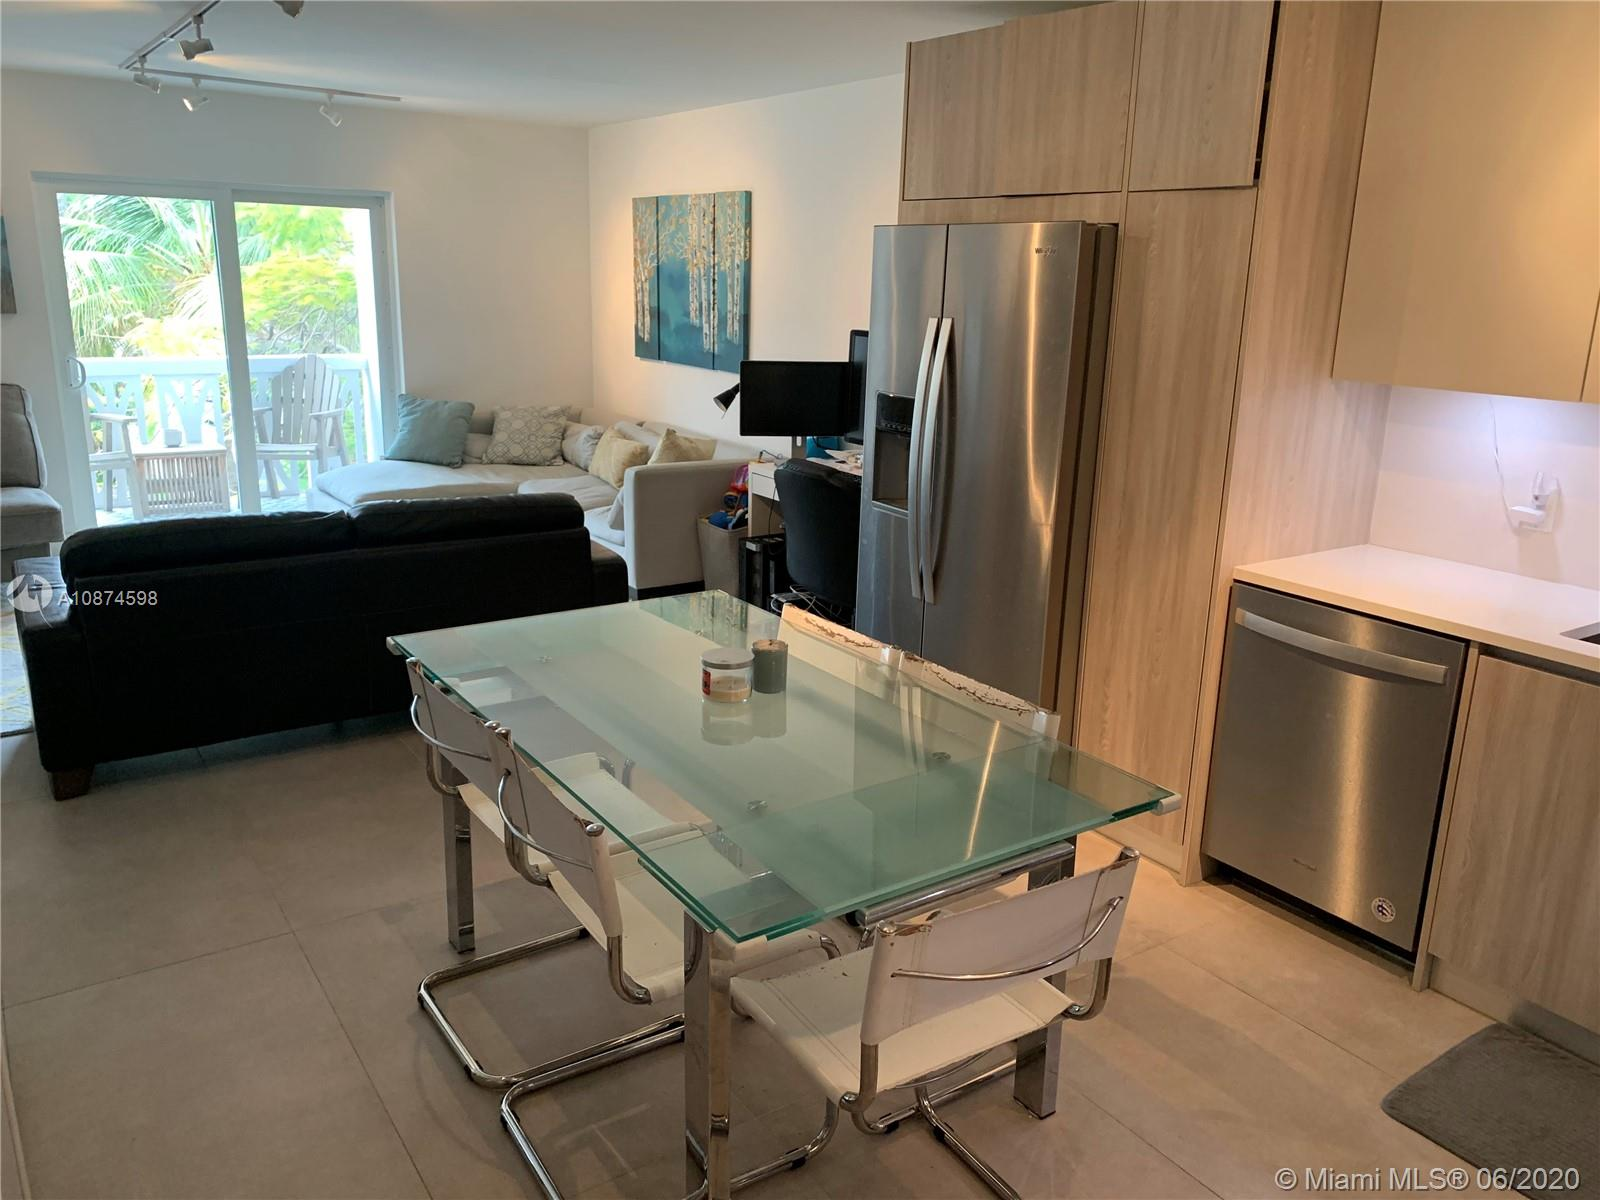 Enjoy the sand and tranquility from this beautiful apartment that was COMPLETELY RENOVATED in 2019. The lowest priced 3 bedroom condo in all of Key Biscayne, this apartment is located just a half a block from the beach and includes private beach access. All three bedrooms have custom built-in closets and both bathrooms are ultra modern with one having a shower and the other a tub. The kitchen features top of the line appliances with high end finishes and soft close cabinetry, and the unit is equipped with hurricane impact windows. It is tiled throughout and has a lovely balcony for relaxing. Move in and don't do a thing! The condo is less than a 5 minute walk to the local grocery store, nearby shops and restaurants, and Crandon Park.